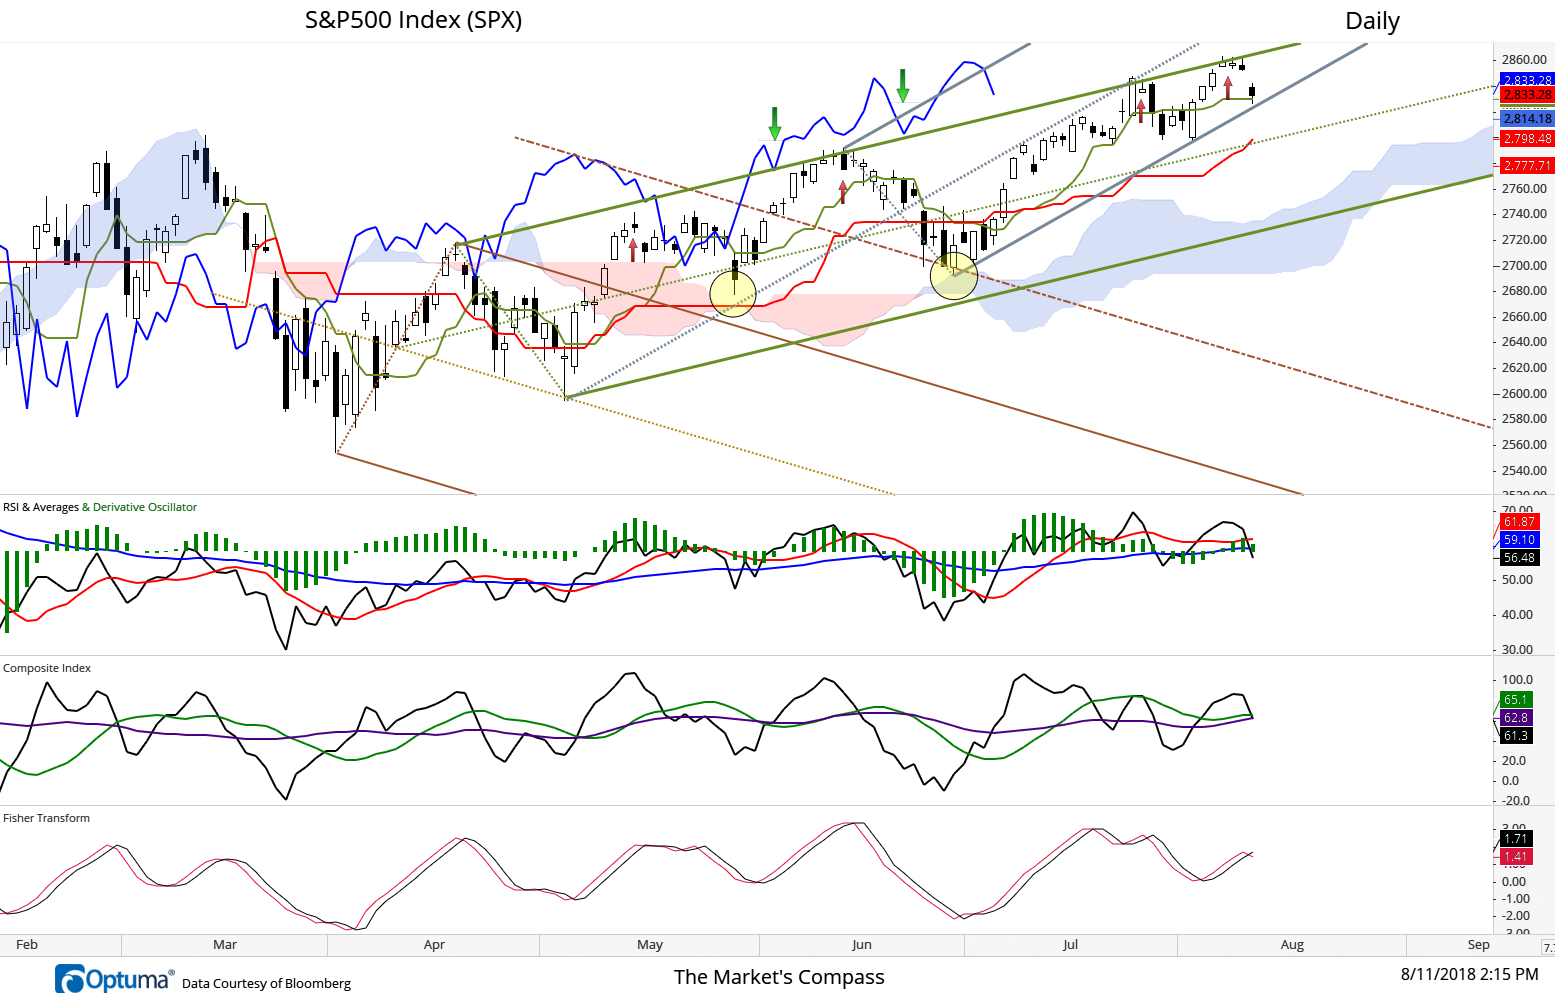 After first re-gaining the ground above the Cloud on May 10th prices failed to reach the Upper Parallel of the Schiff Modified Pitchfork (green) two days later. This is noted with first red arrow. That failure produced an evening star reversal pattern suggesting that a re-test of cloud support and the Kijun Line (solid red line) was in the cards. It held that level (first yellow circle) and made a second attempt to rally above Schiff Modified Pitchfork and failed again (second red arrow)and pulled back and to find support at the cloud and the Upper Warning Line (brown dashed line) of the longer term Schiff Pitchfork (second yellow circle) . That pivot at a slightly higher low allowed the addition of the newer Standard Pitchfork (dark gray). That rally failed at dual Pitchfork resistance (third red arrow). Prices pulled back to the Lower Parallel of the Standard Pitchfork but ensuing railed again (fourth red arrow) but failed again and Friday's -20.30 point or -0.70% selloff drove price back to the Lower Parallel of the Standard Pitchfork. The Lagging Line thus far has held support (green arrows) but if it breaks that support and prices break support at the Lower Parallel and can't hold the confluence of support at the Kijun (red line) and Median Line (green dotted line). Prices are headed back to the top of the cloud and the lower Parallel of the Schiff Modified Pitchfork which is nearly 100 points lower. Noting the position of the three momentum oscillators this becomes a distinct possibility.